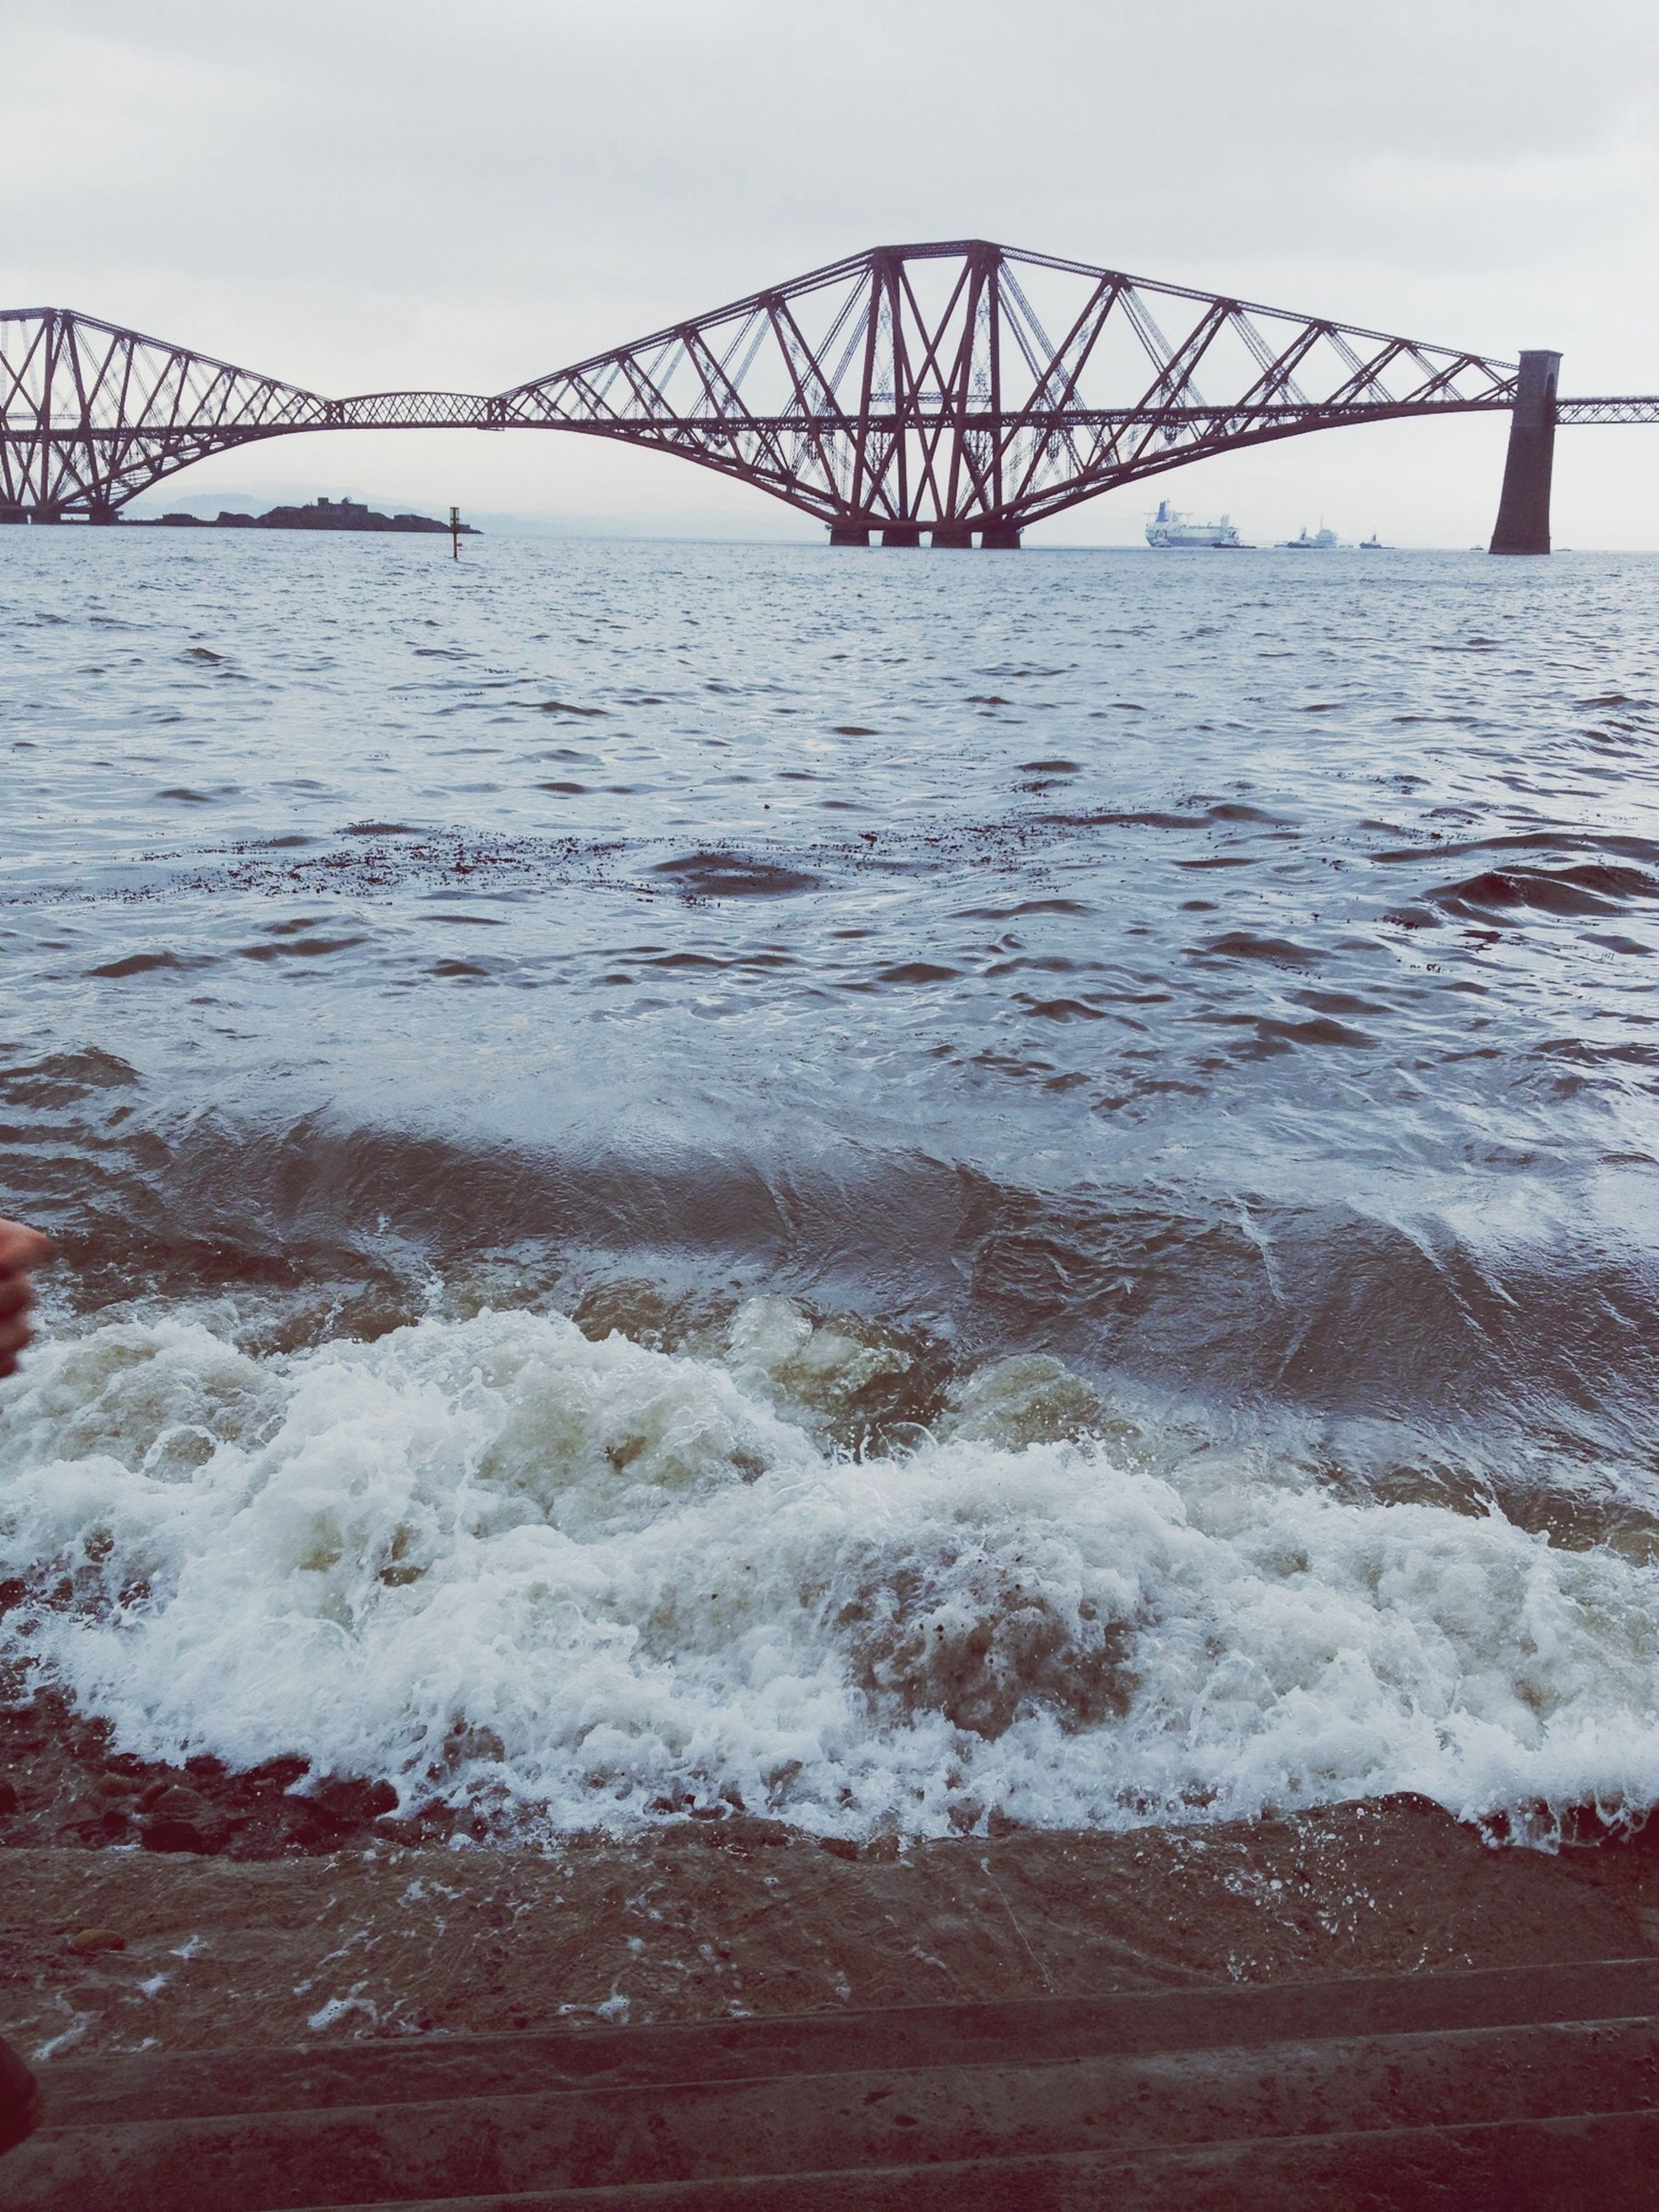 water, sea, sky, pier, bridge - man made structure, built structure, connection, river, nature, railing, rippled, metal, wave, no people, outdoors, scenics, tranquility, waterfront, beauty in nature, architecture